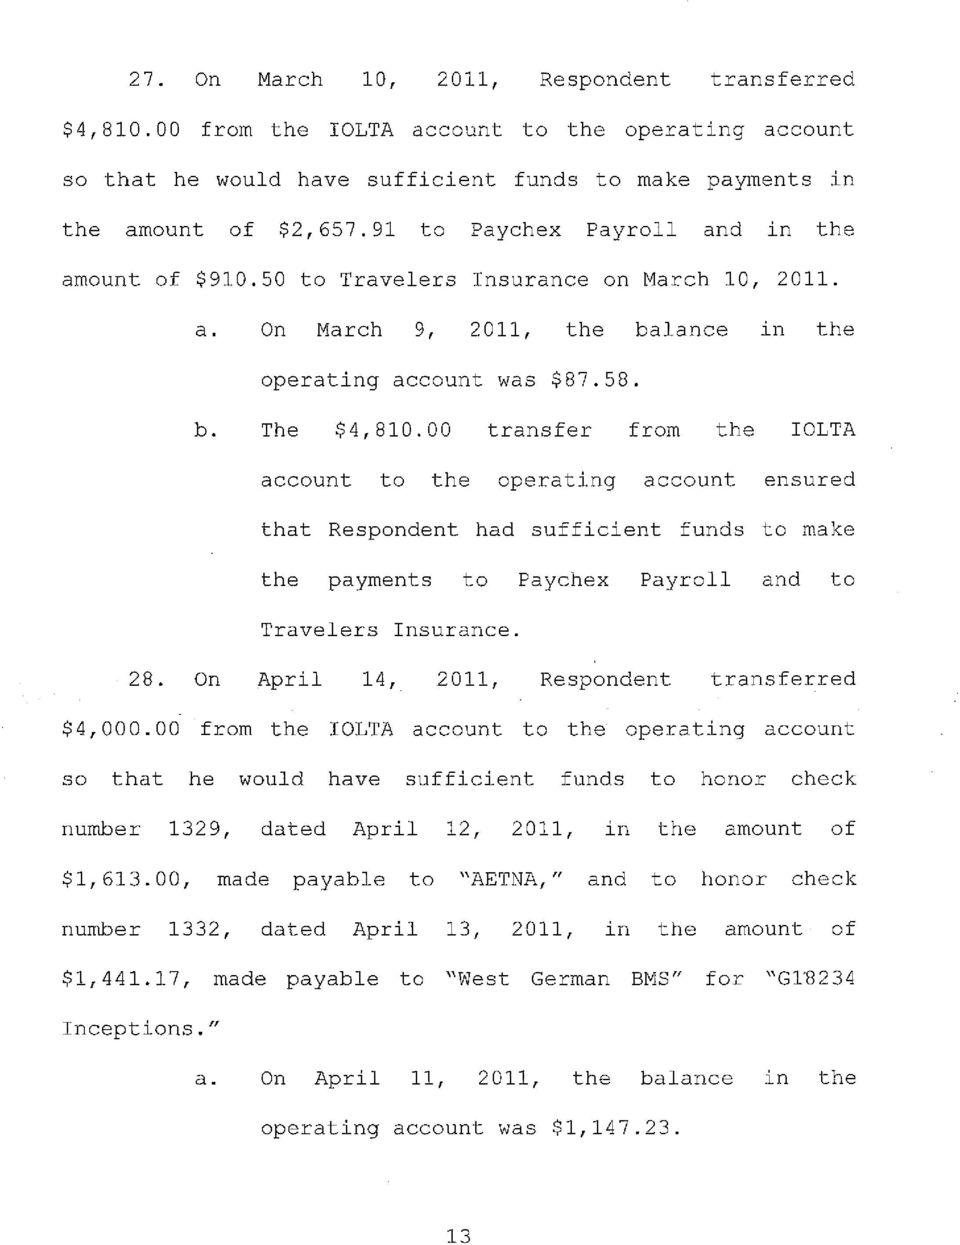 00 transfer from the IOLTA account to the operating account ensured that Respondent had sufficient funds to make the payments to Paychex Payroll and to Travelers Insurance. 28.